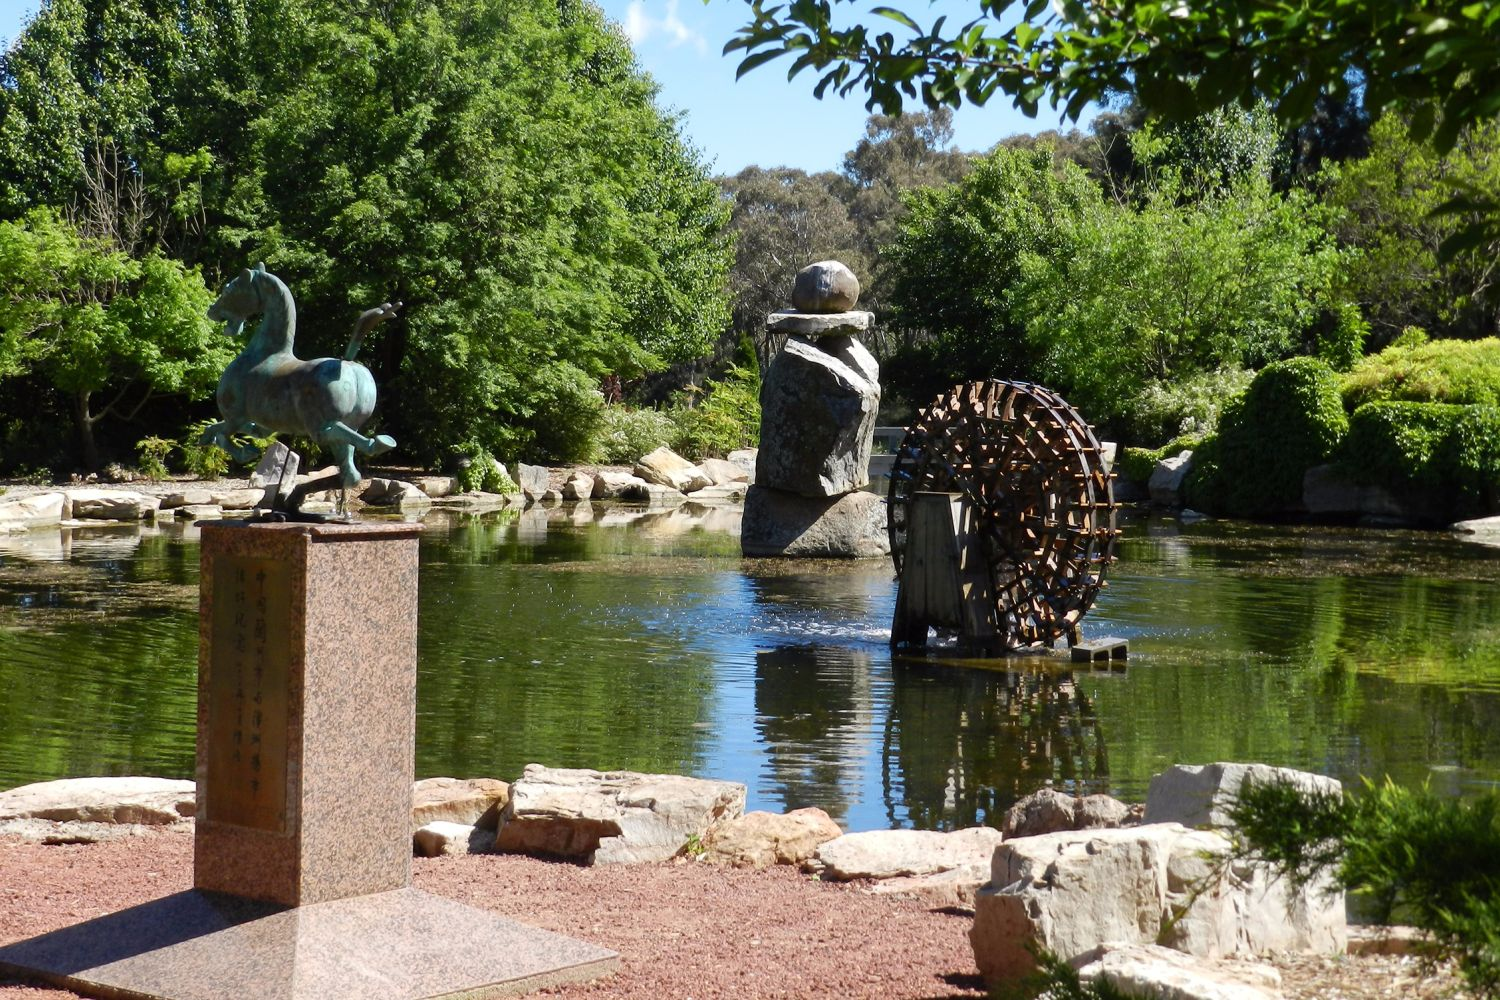 Pond sculptures in the Lambing Flat Chinese Tribute Gardens, Young